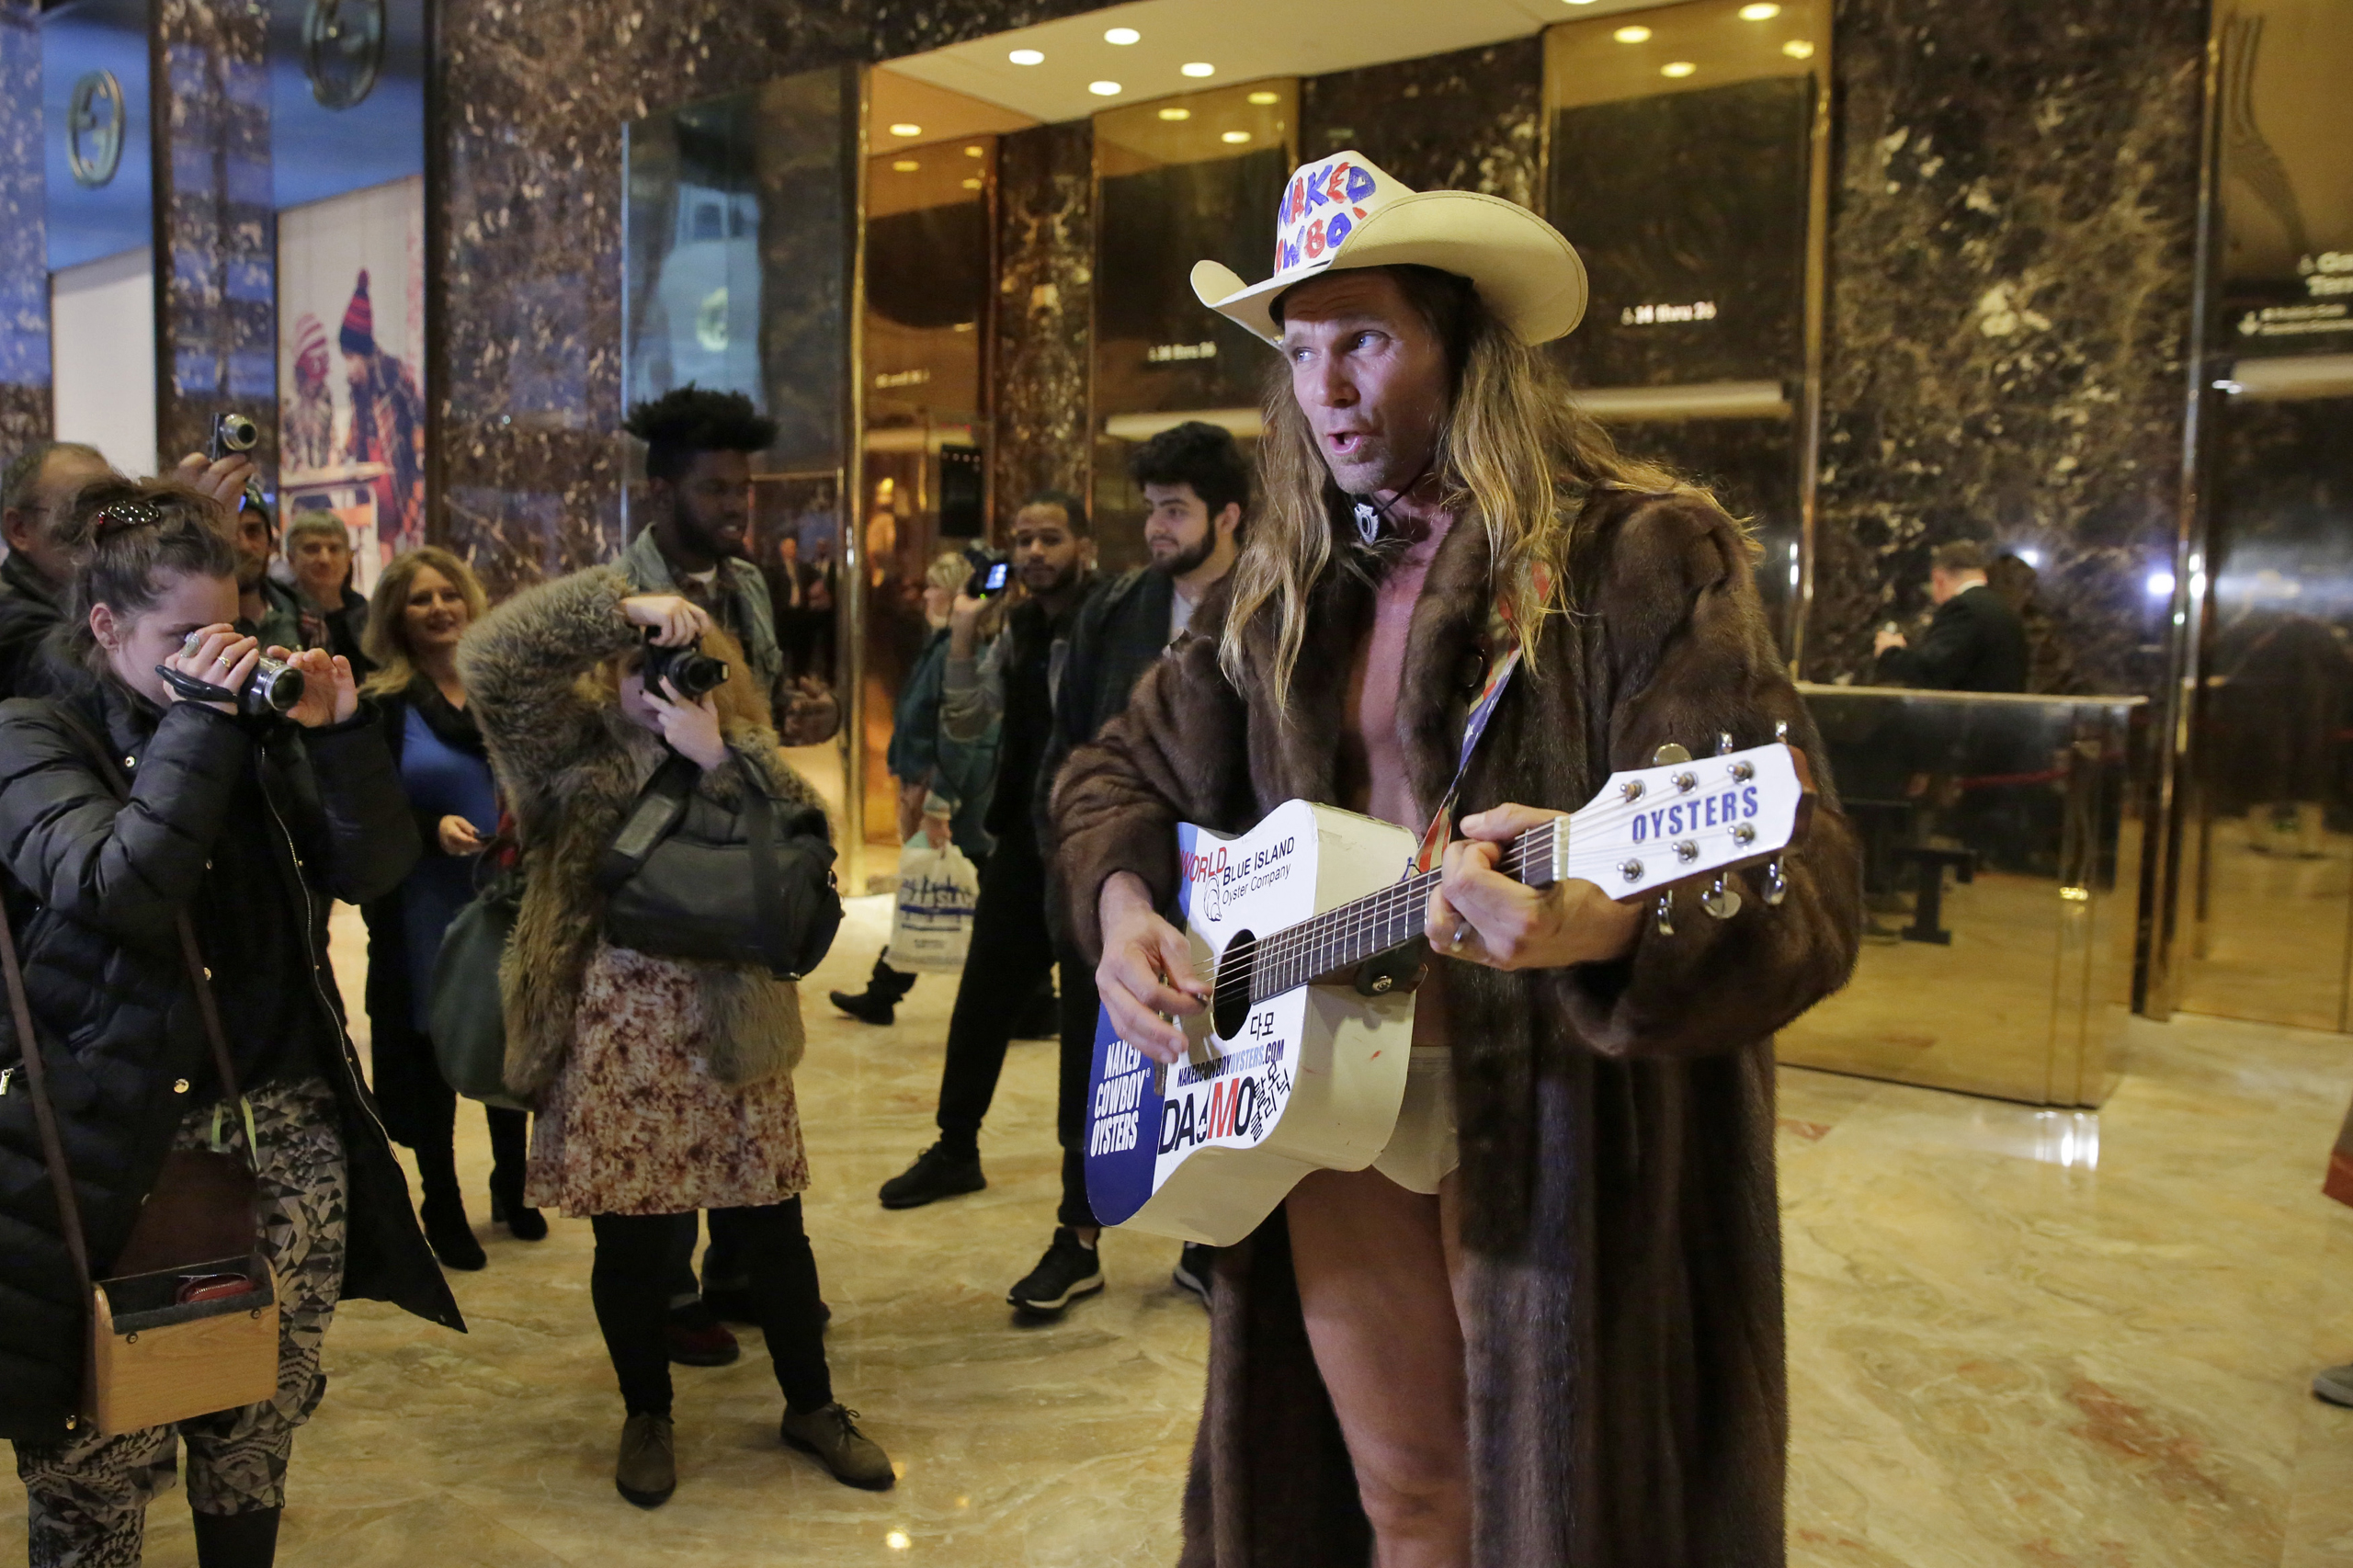 Robert Burck, who portrays the Naked Cowboy, performs a Trump-themed song in the lobby of Trump Tower in New York, on Nov. 18, 2016.